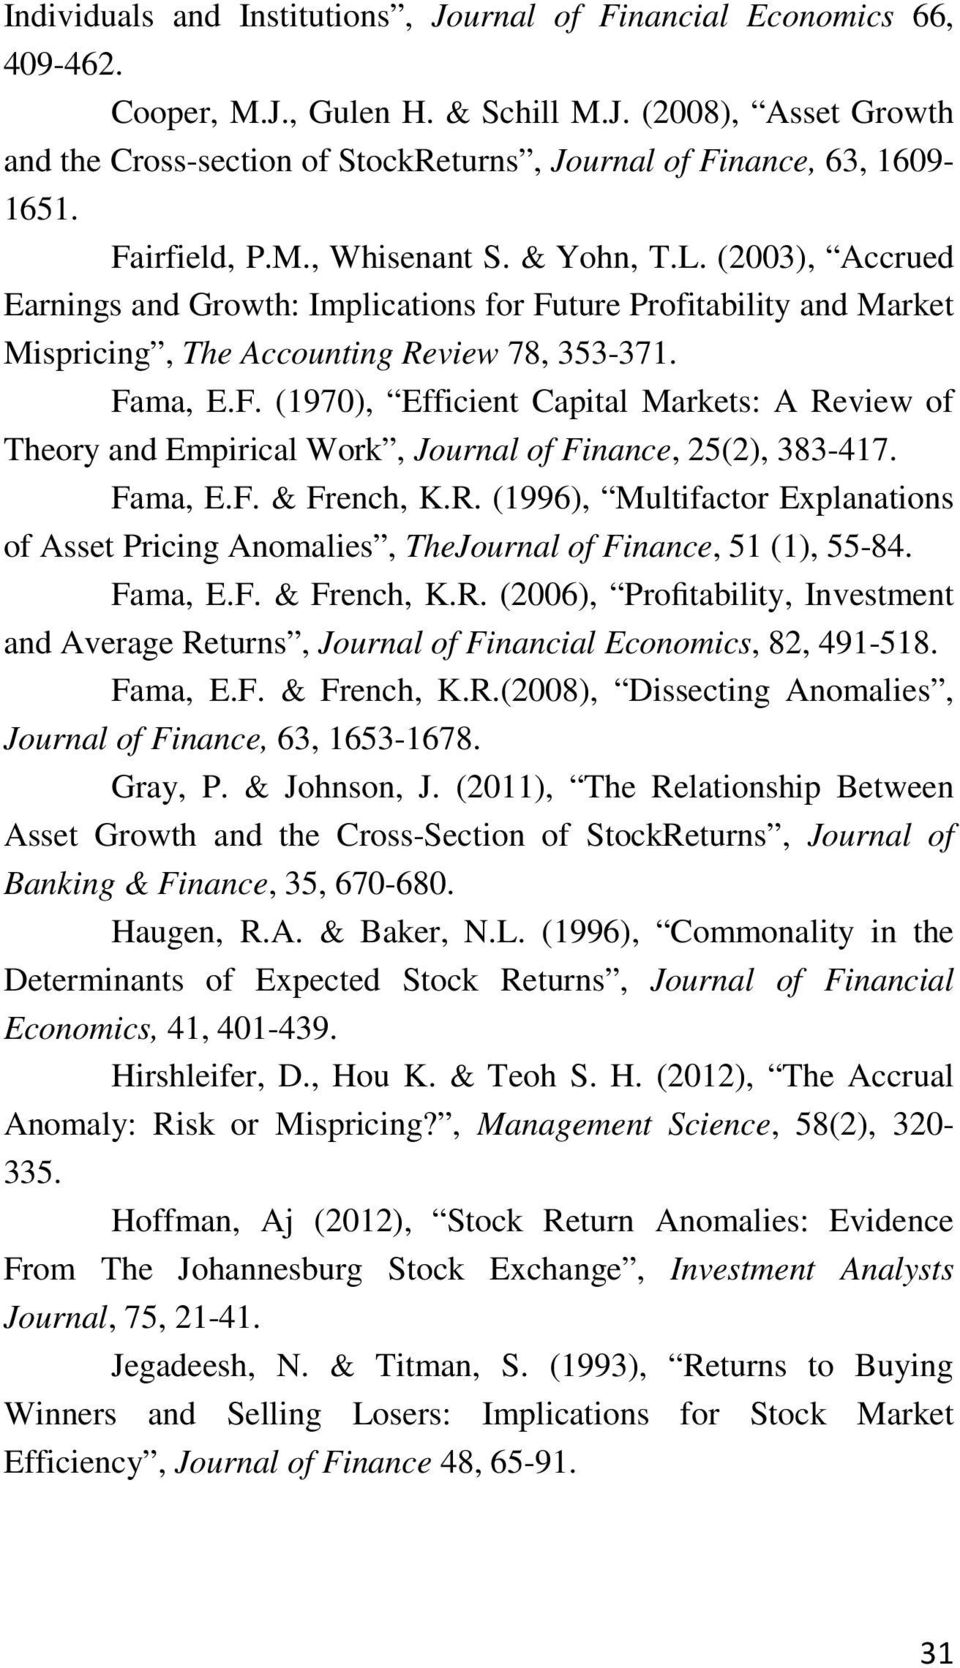 Fama, E.F. & French, K.R. (1996), Multifactor Explanations of Asset Pricing Anomalies, TheJournal of Finance, 51 (1), 55-84. Fama, E.F. & French, K.R. (2006), Profitability, Investment and Average Returns, Journal of Financial Economics, 82, 491-518.